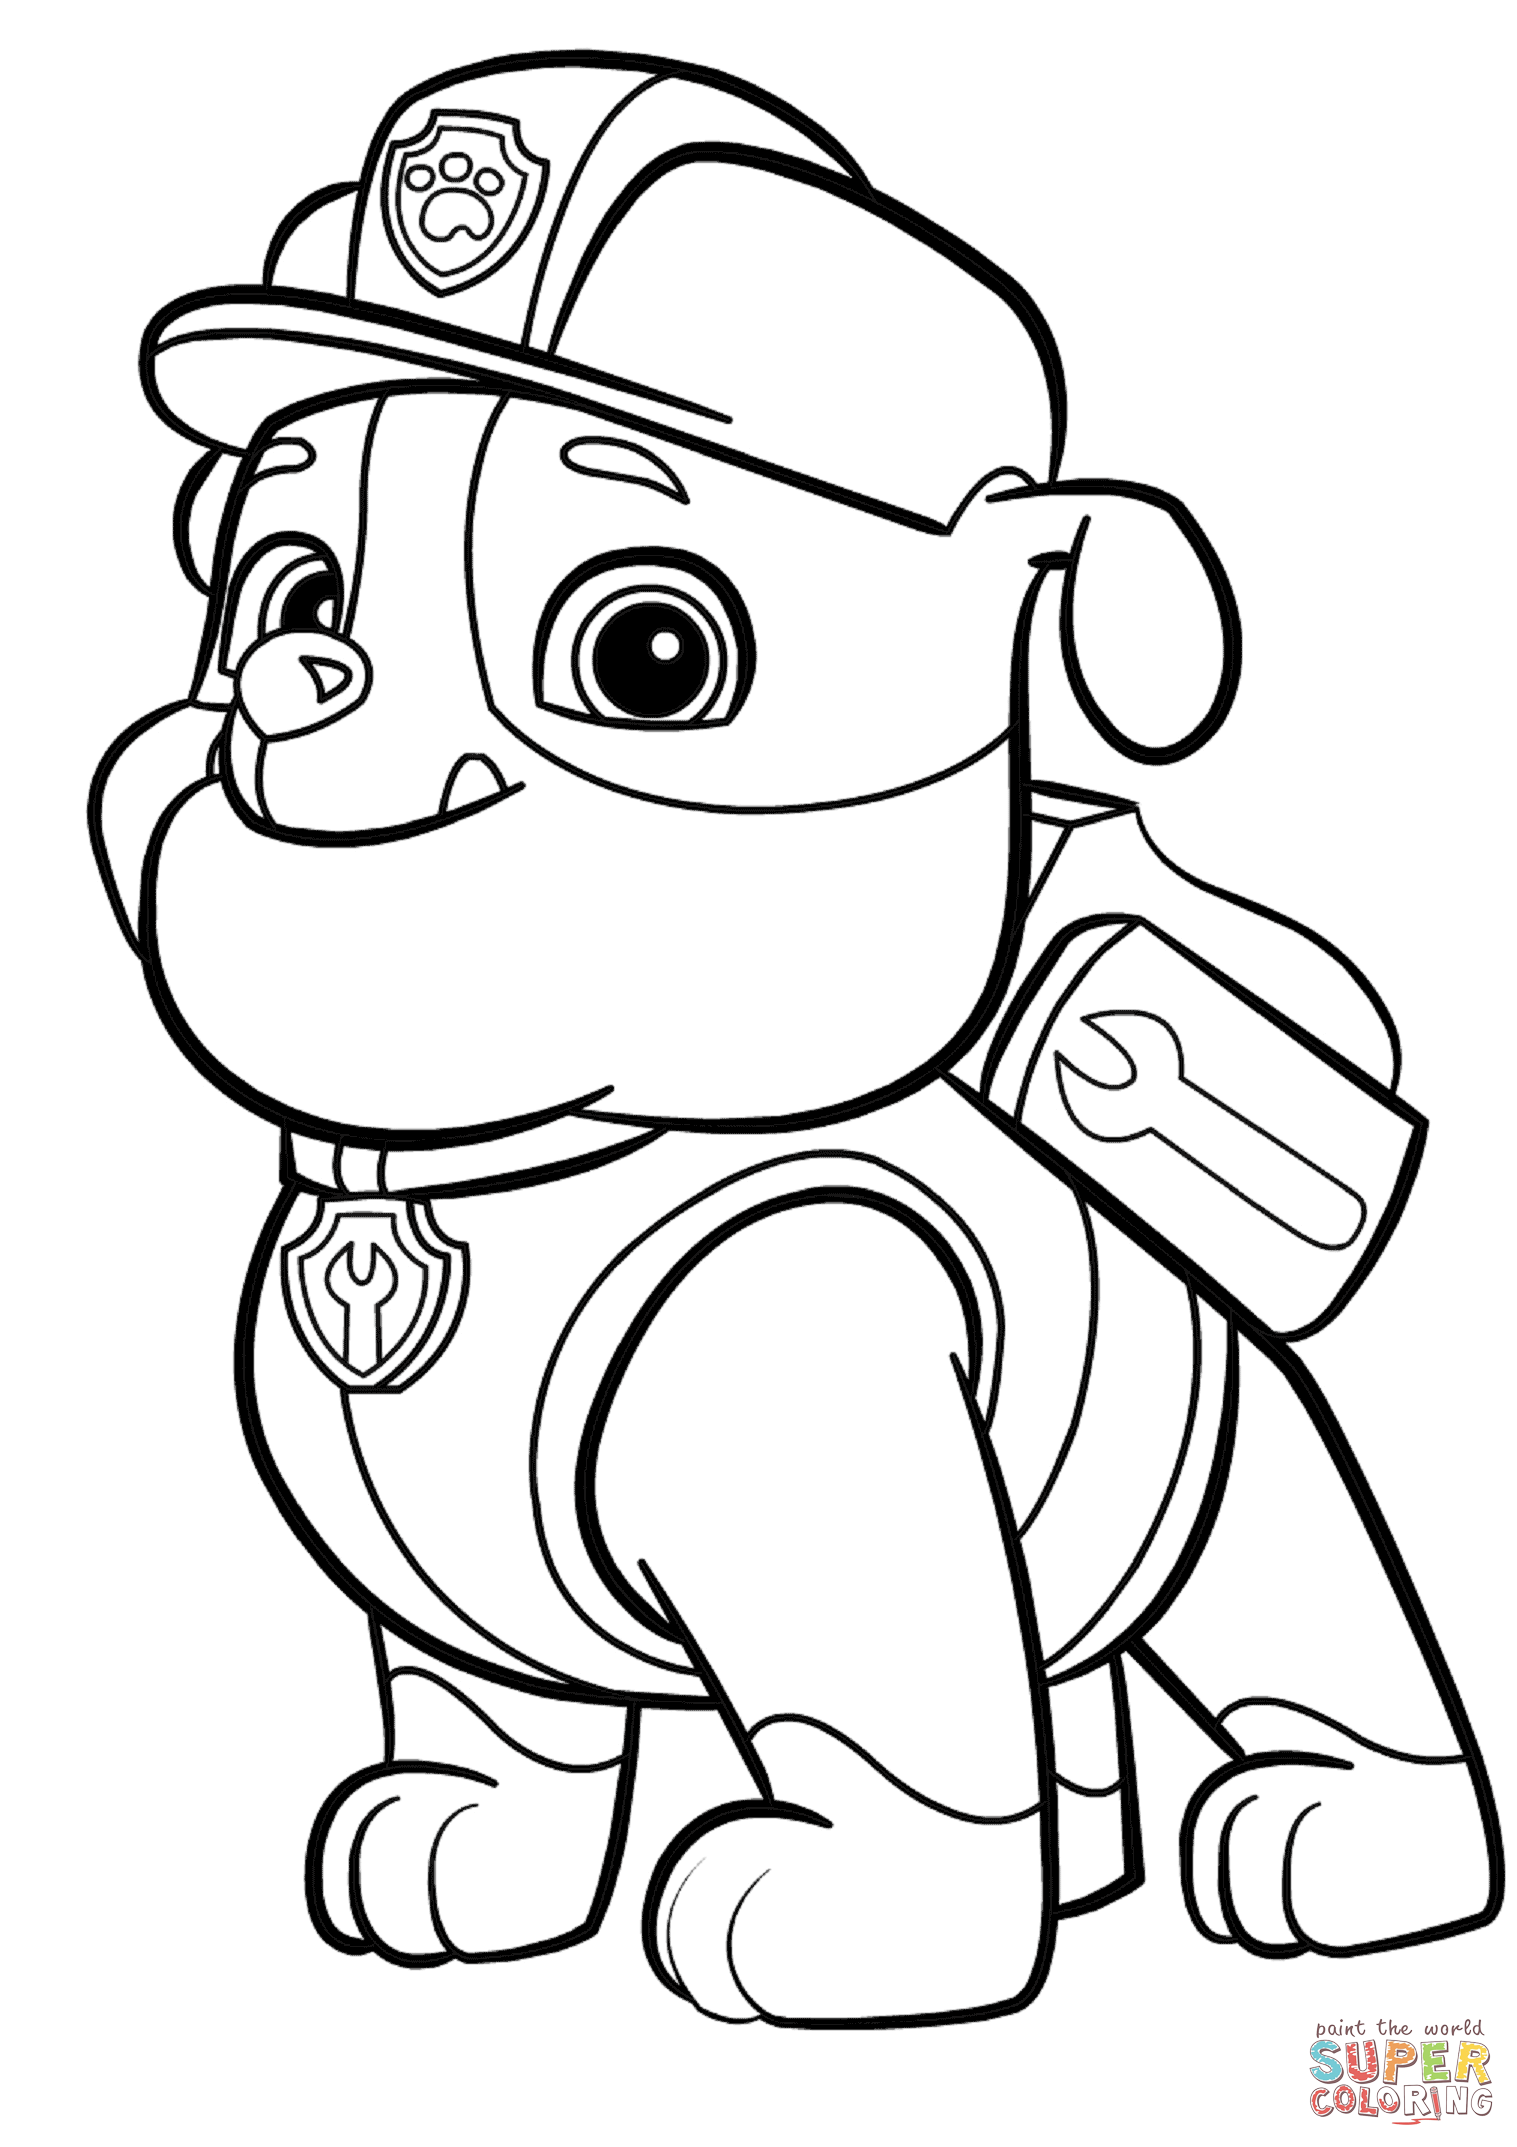 paw patrol coloring rubble paw patrol coloring pages printable free coloring sheets coloring rubble patrol paw